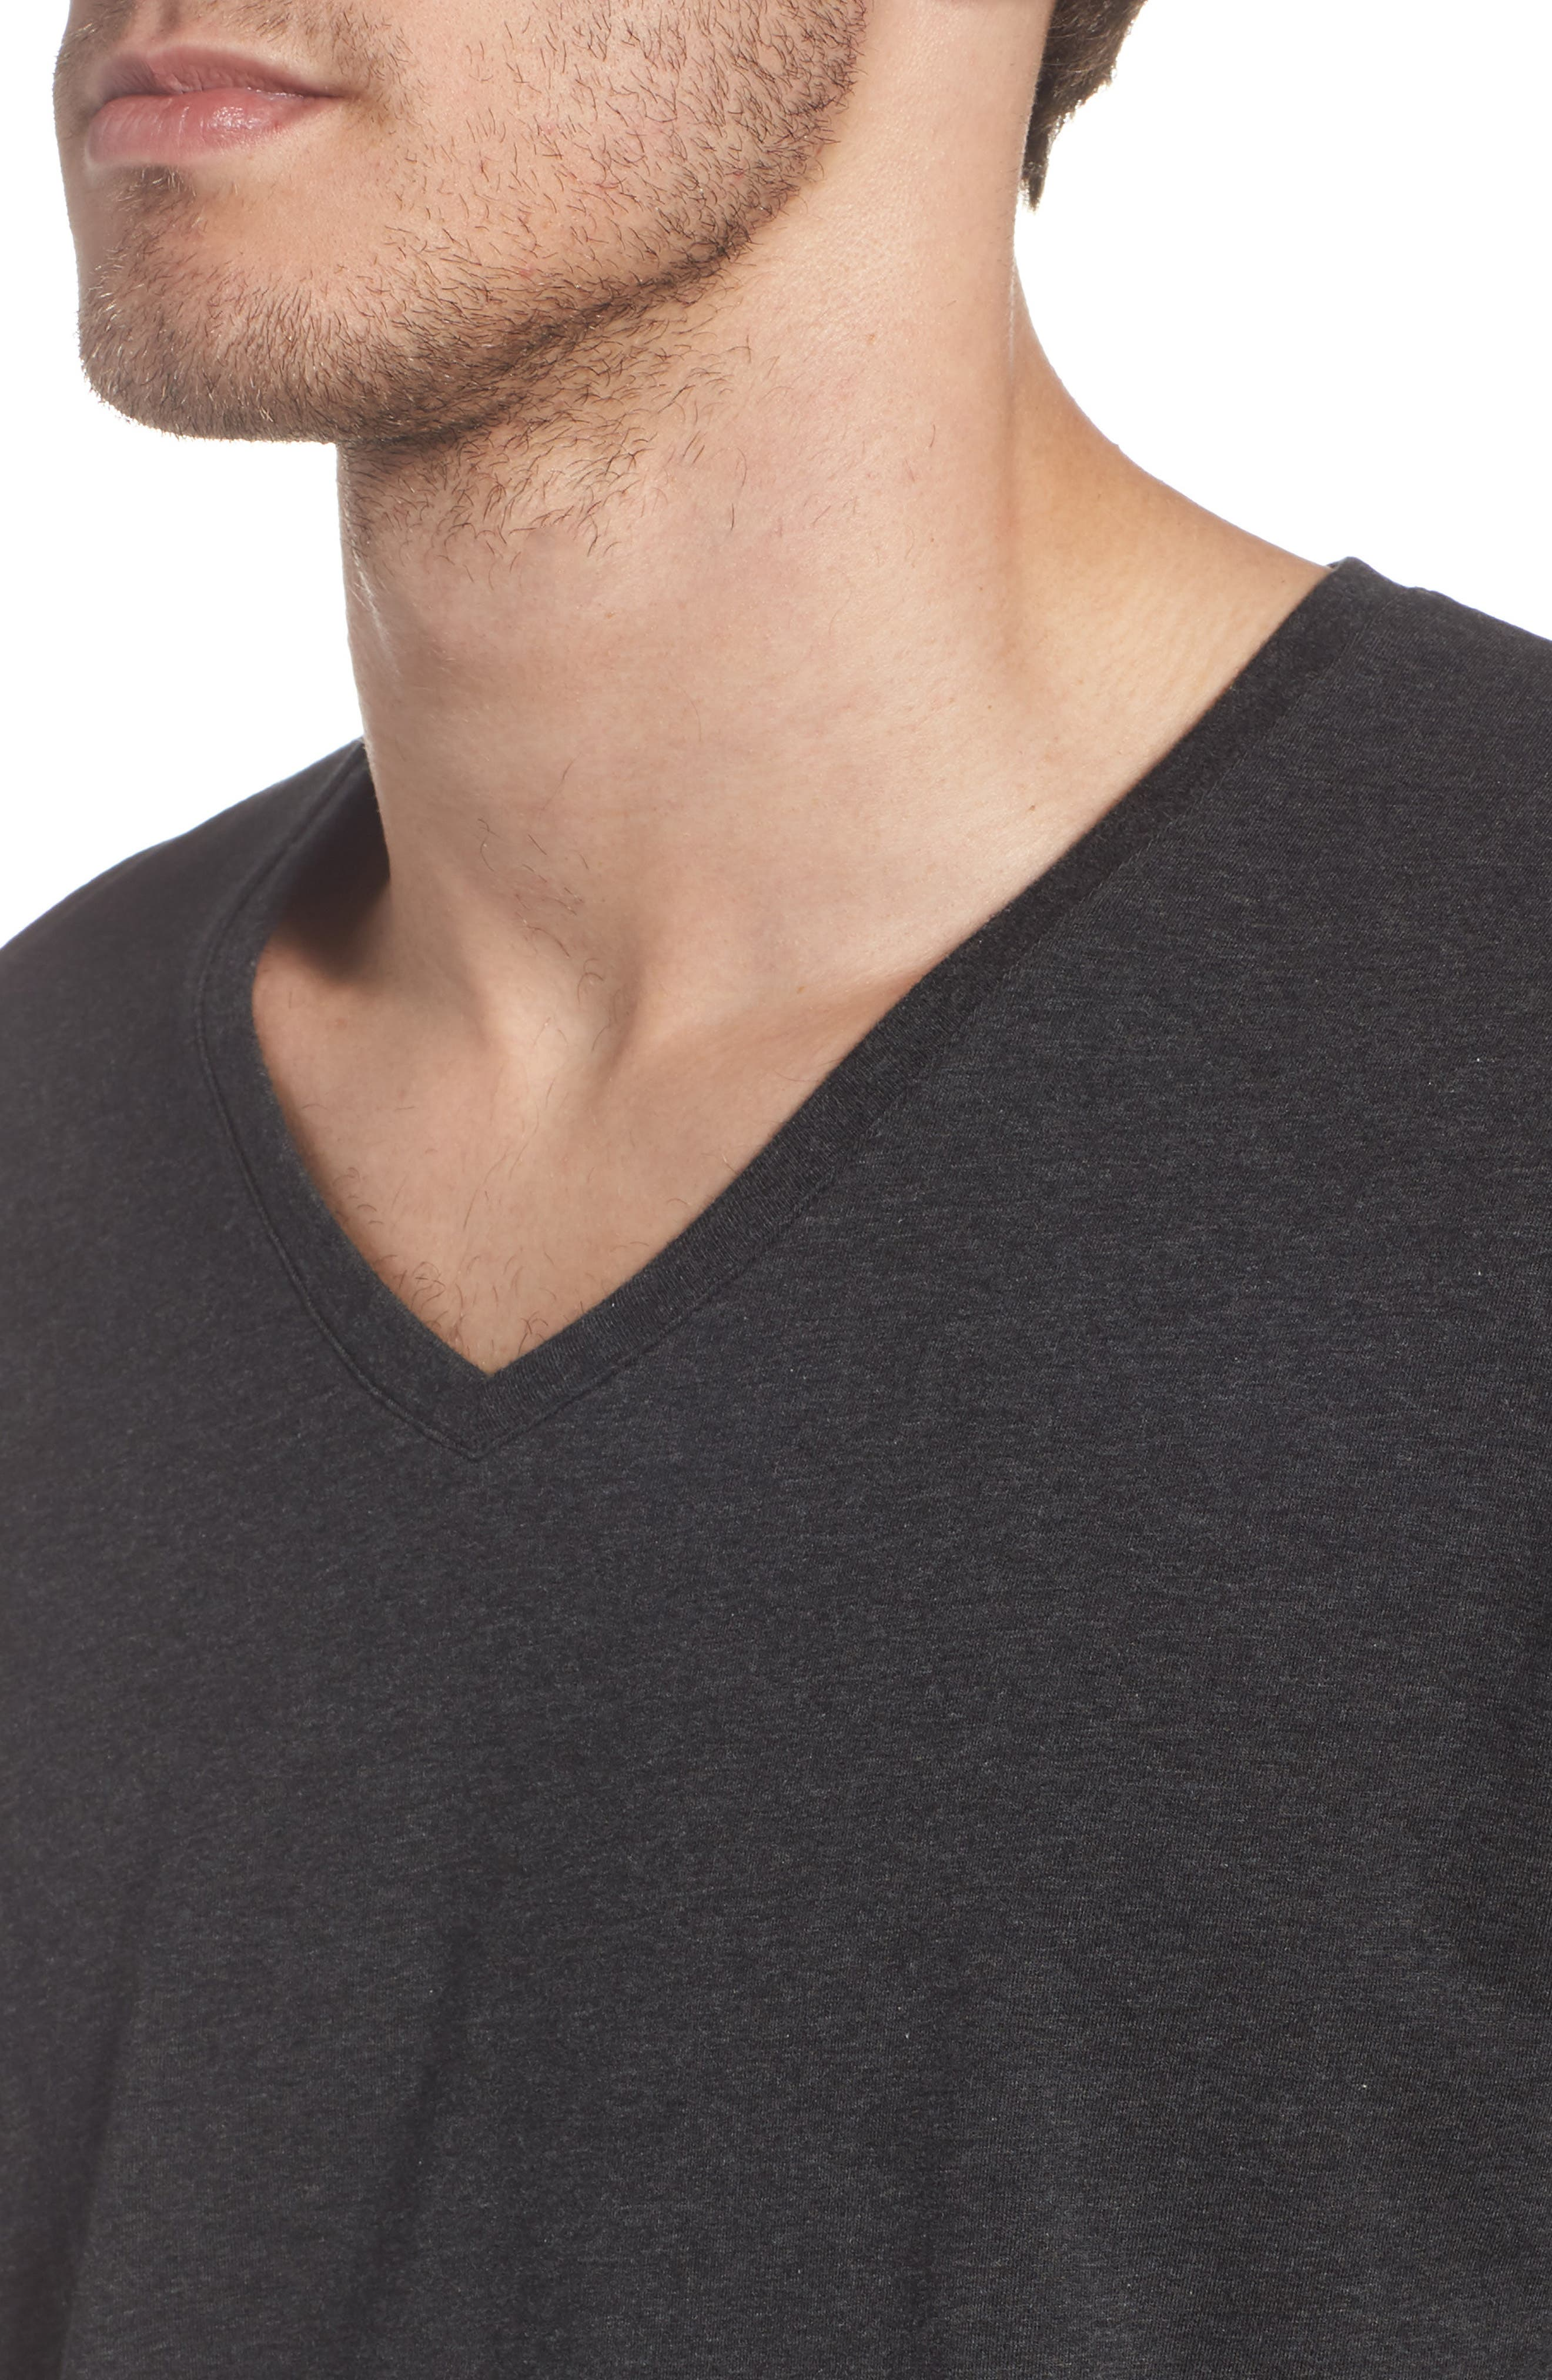 Cotton Blend V-Neck T-Shirt,                             Alternate thumbnail 4, color,                             HEATHER CHARCOAL